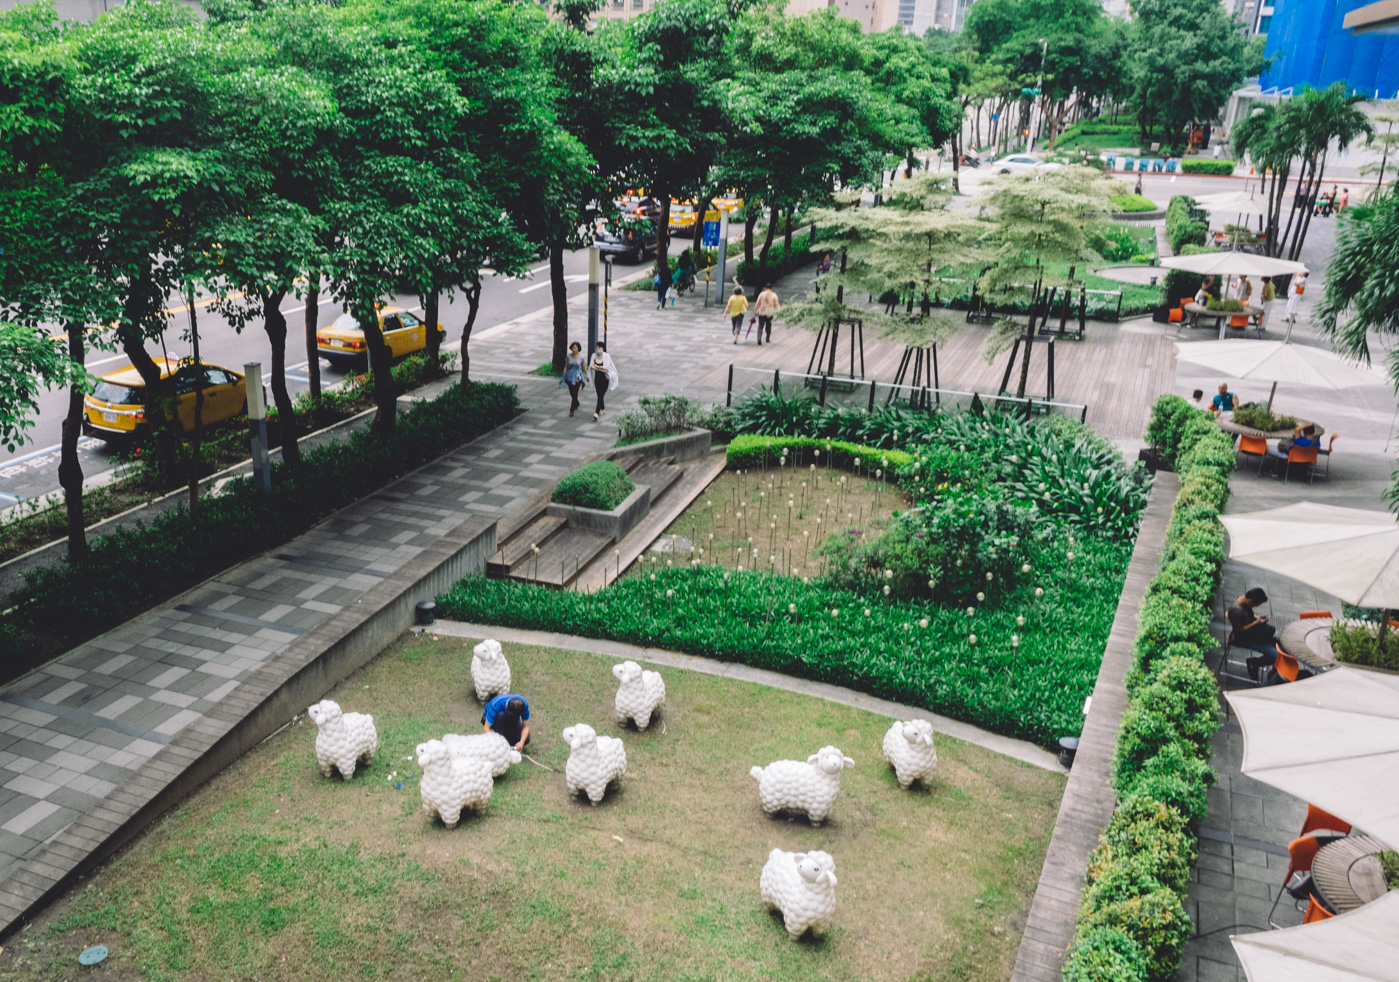 Taiwan - Taipei - Mall area with sheep sculptures